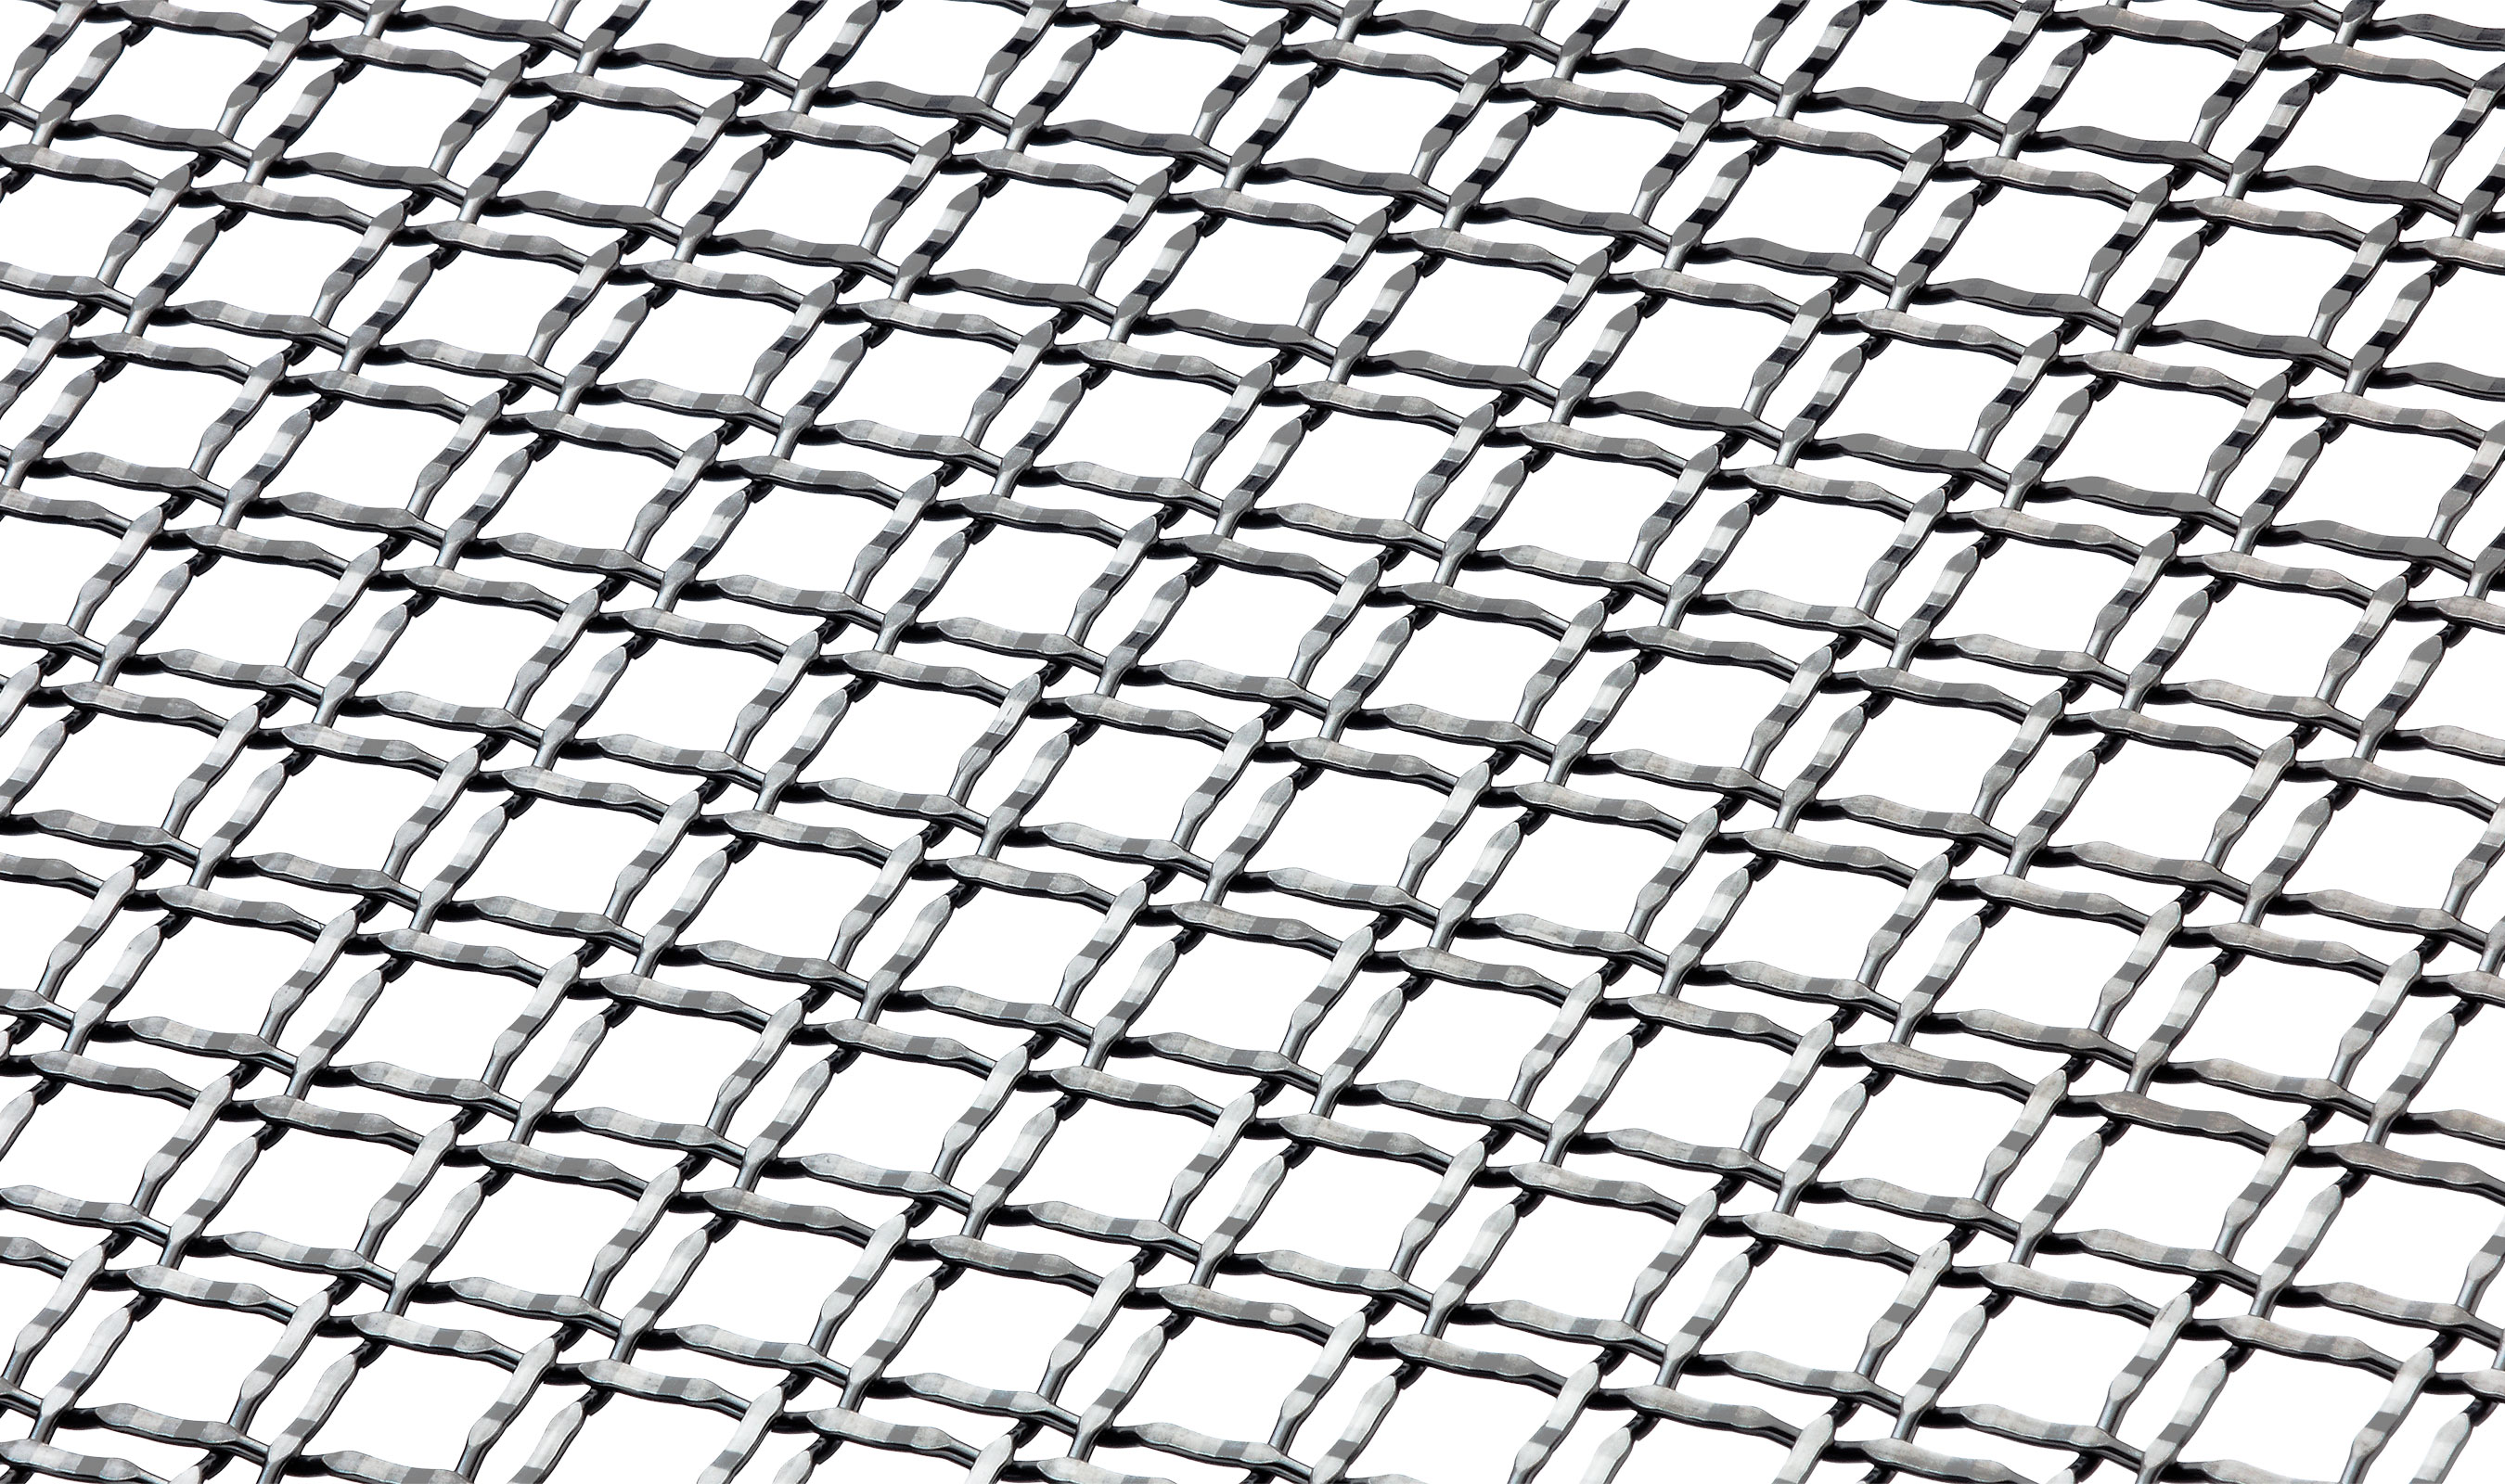 M22-22 Front Angle in Stainless Woven Wire Mesh